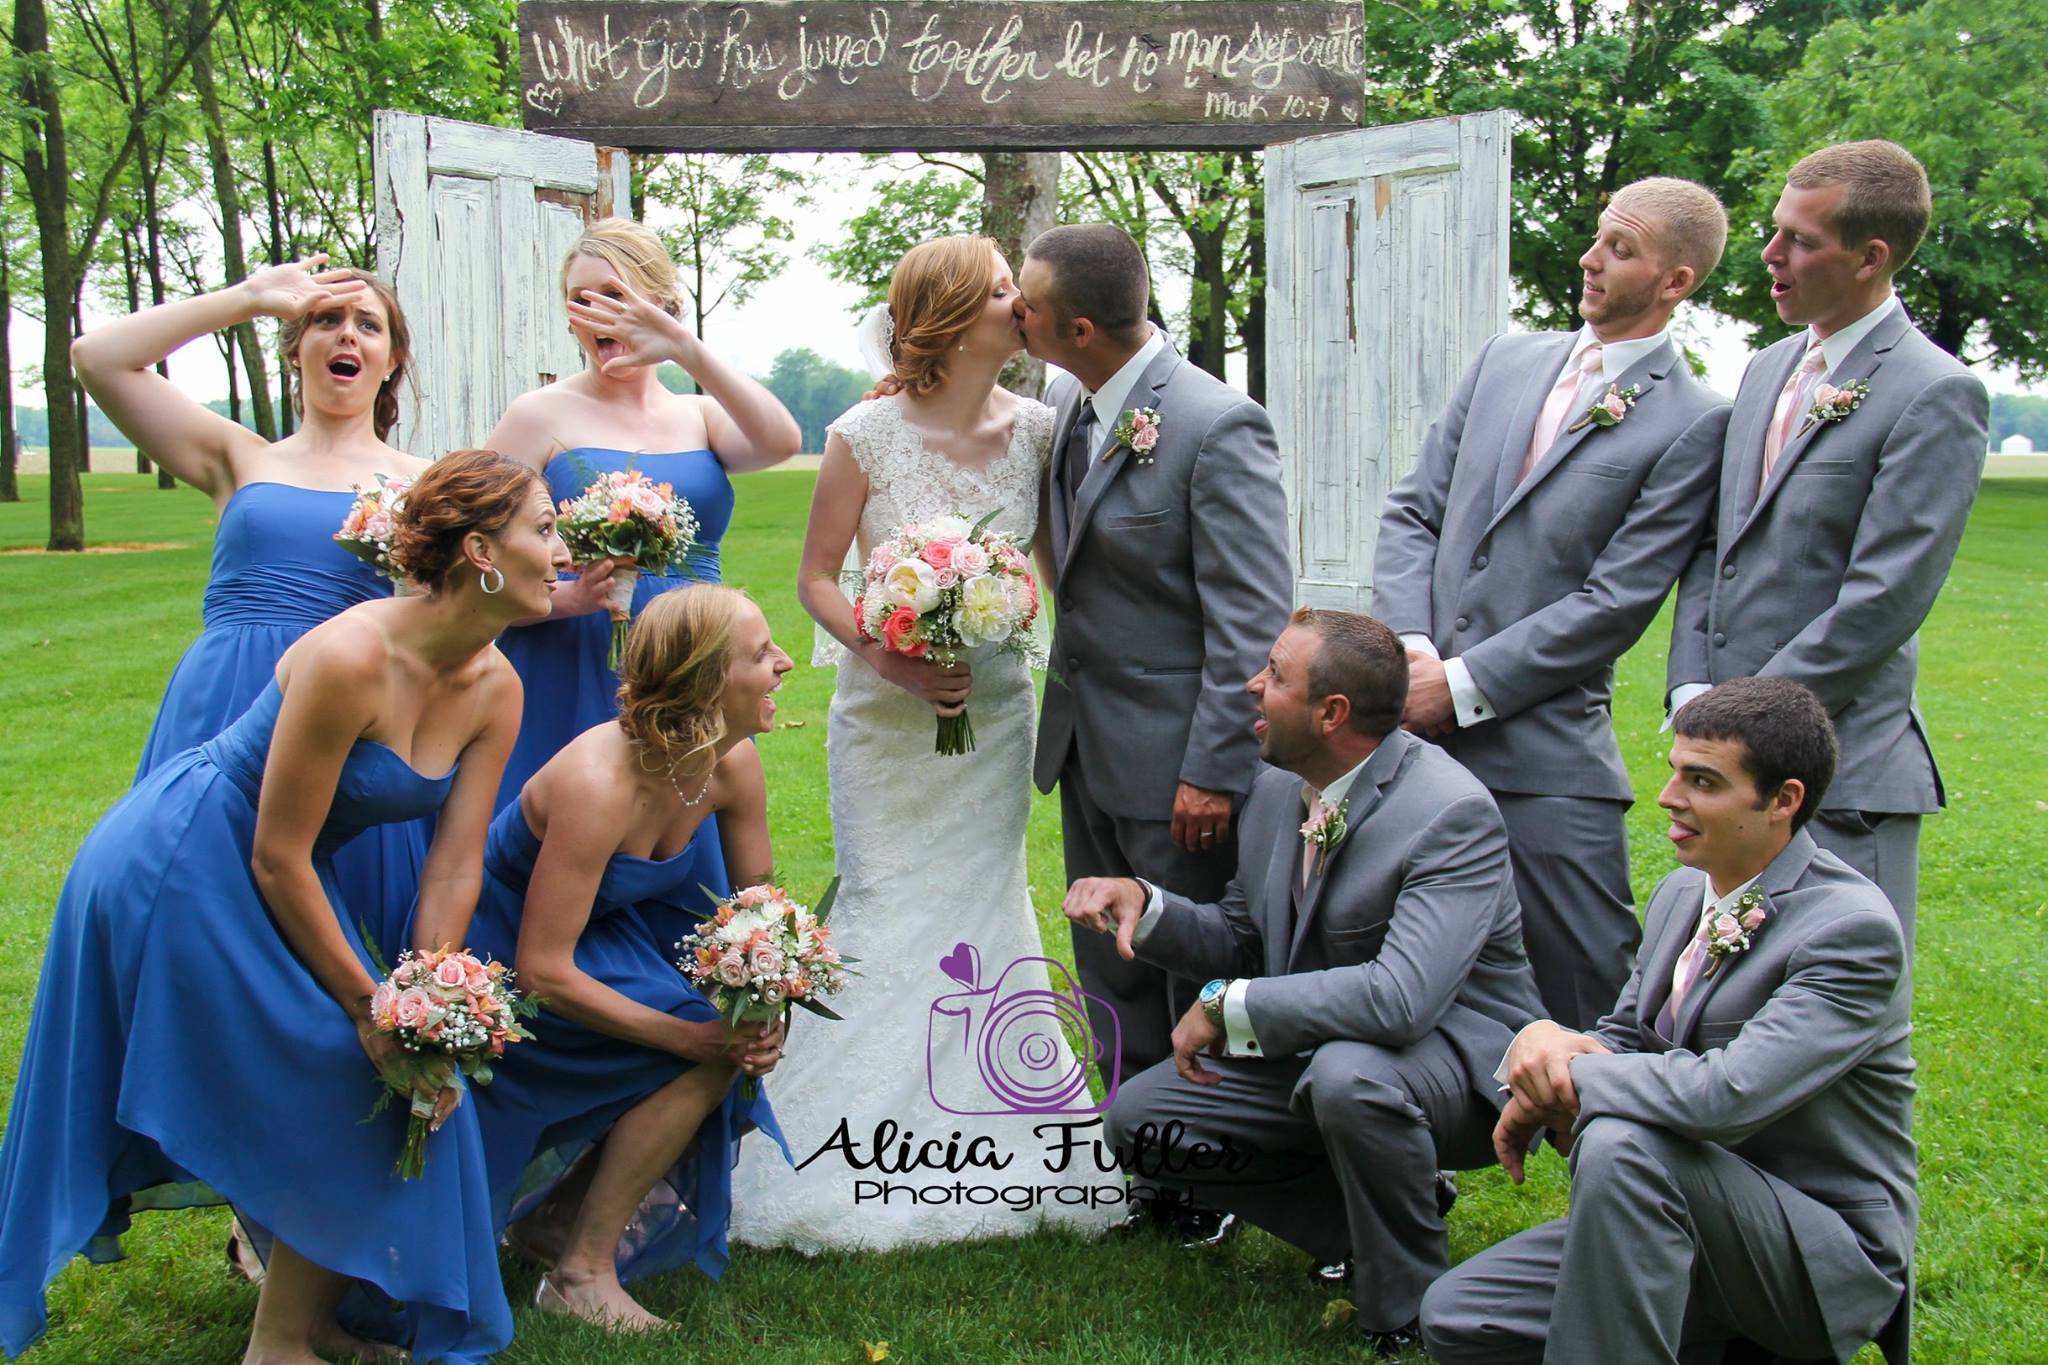 A funny pose by the Bride, Groom & Bridal Party in from of rustic doors